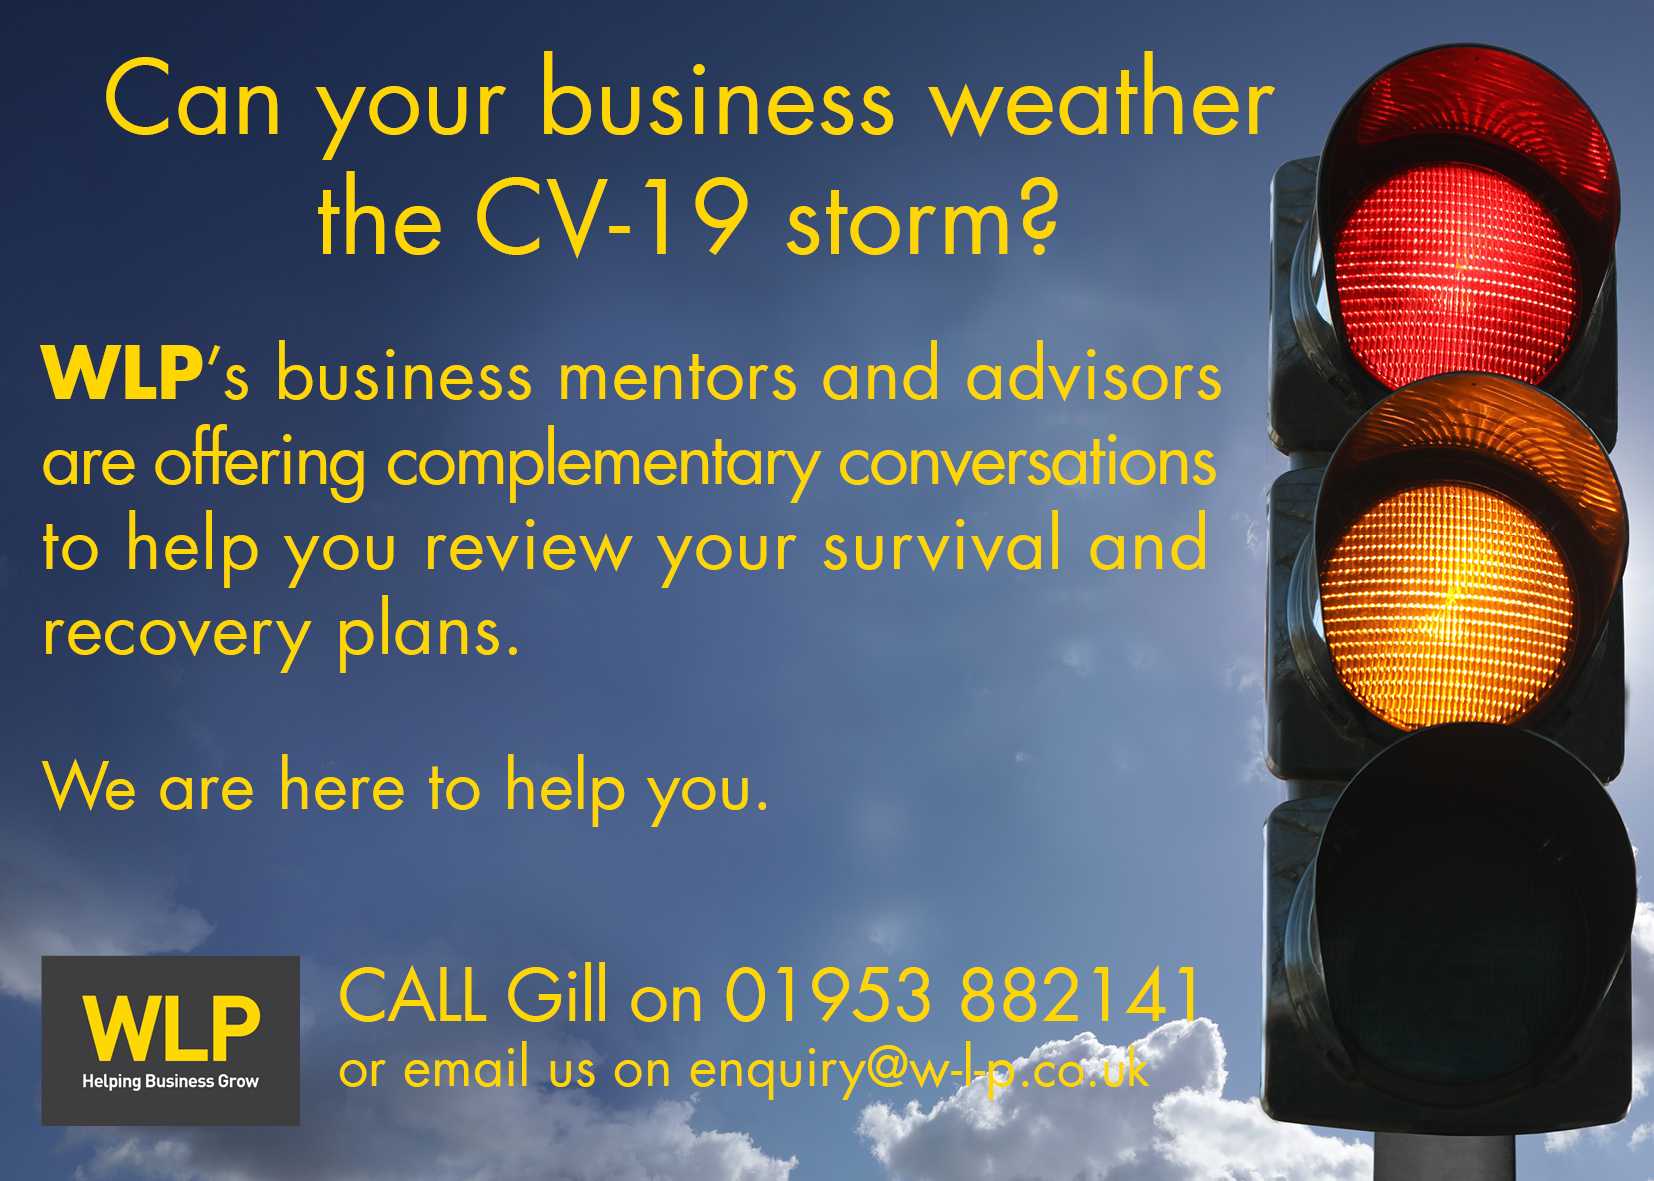 Can your business weather the CV-19 storm?